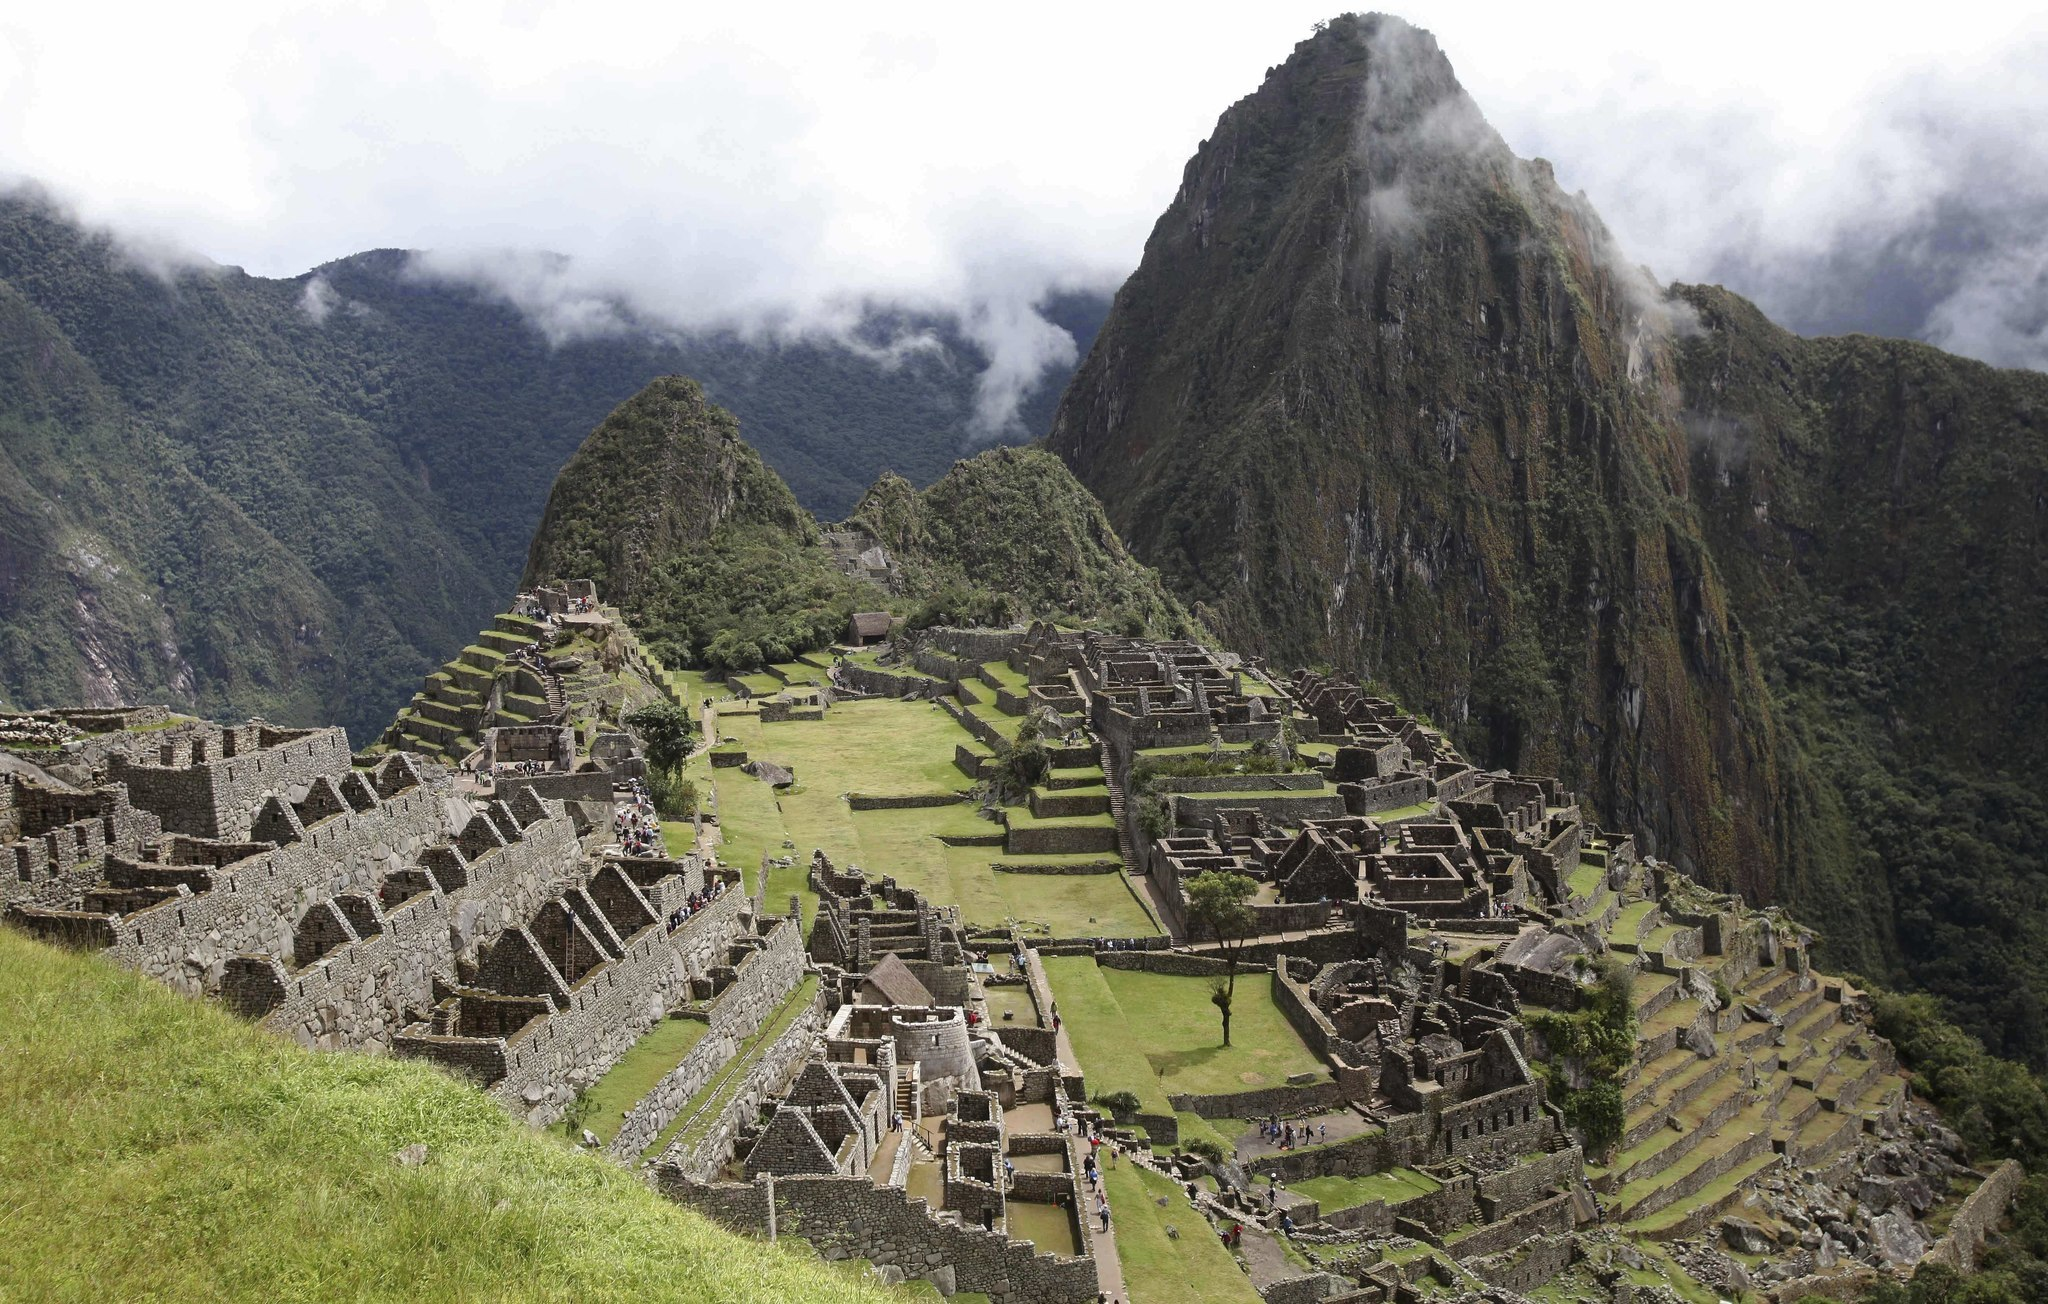 6 tourists accused of 'attack' at Machu Picchu, arrested after feces found at sacred site